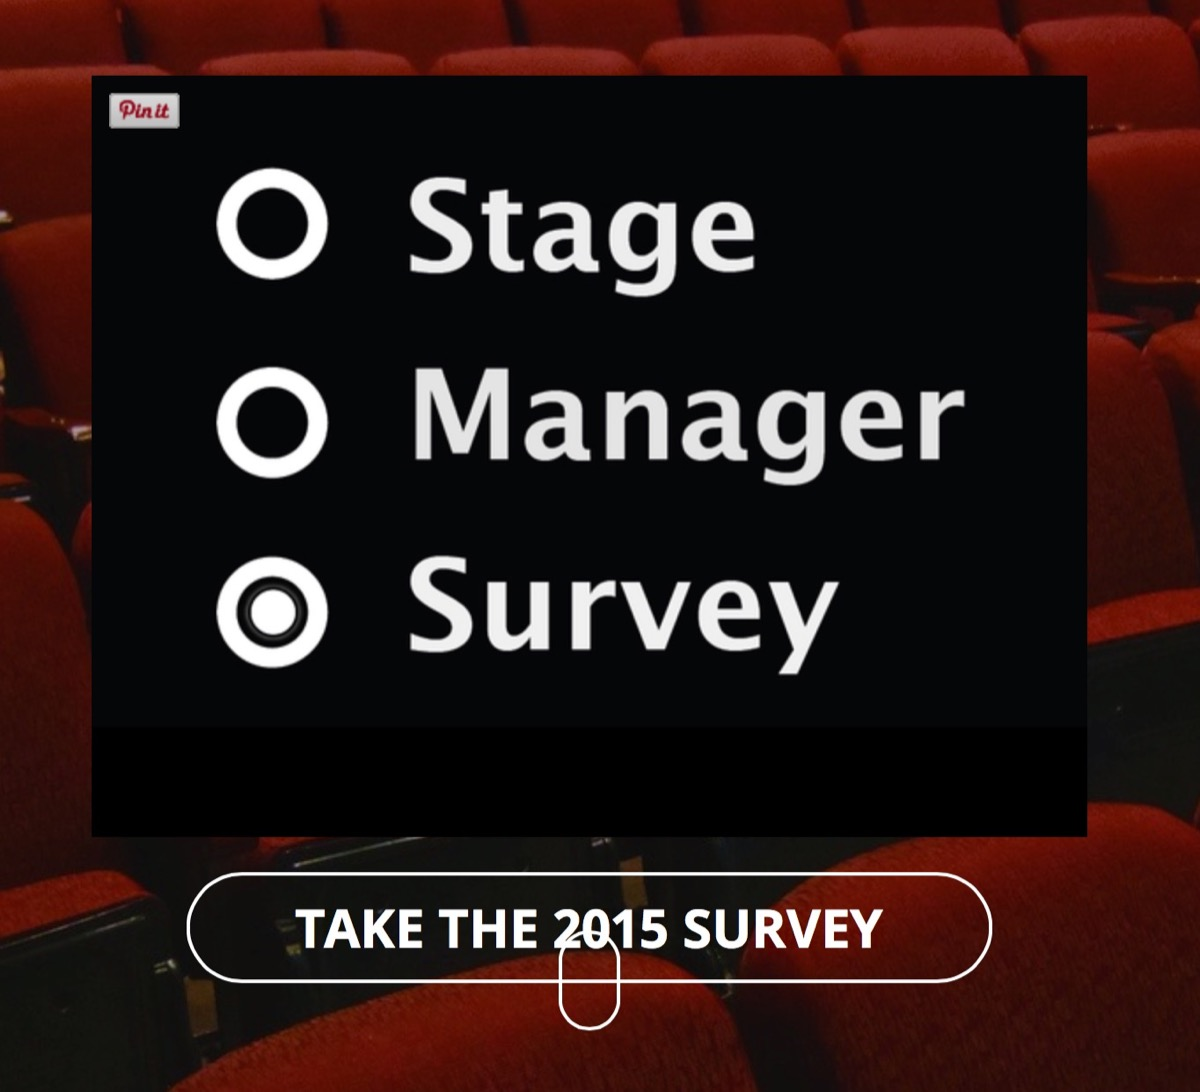 The home page of the SM Survey